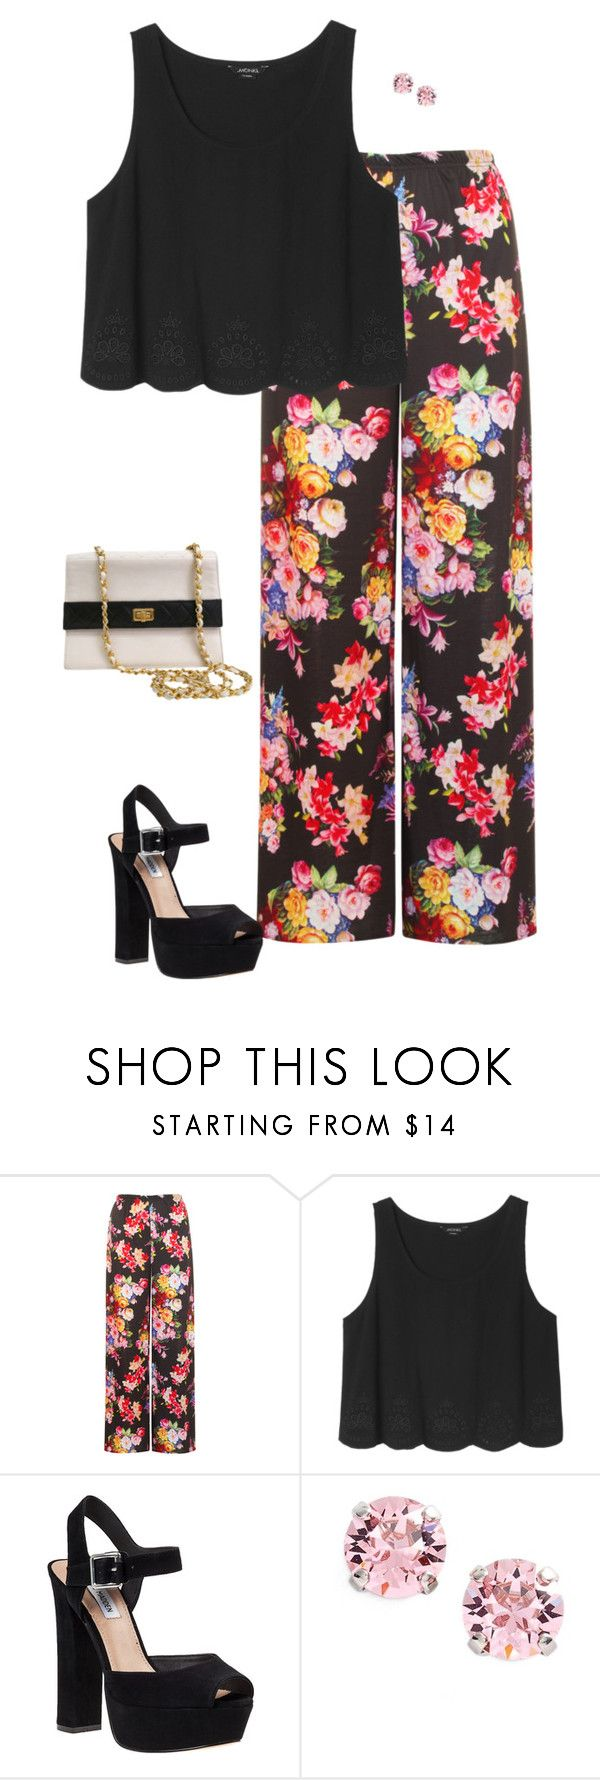 """""""My Dinner Party Outfit✨"""" by verostyle16 ❤ liked on Polyvore featuring WearAll, Monki, Steve Madden, L. Erickson and Chanel"""